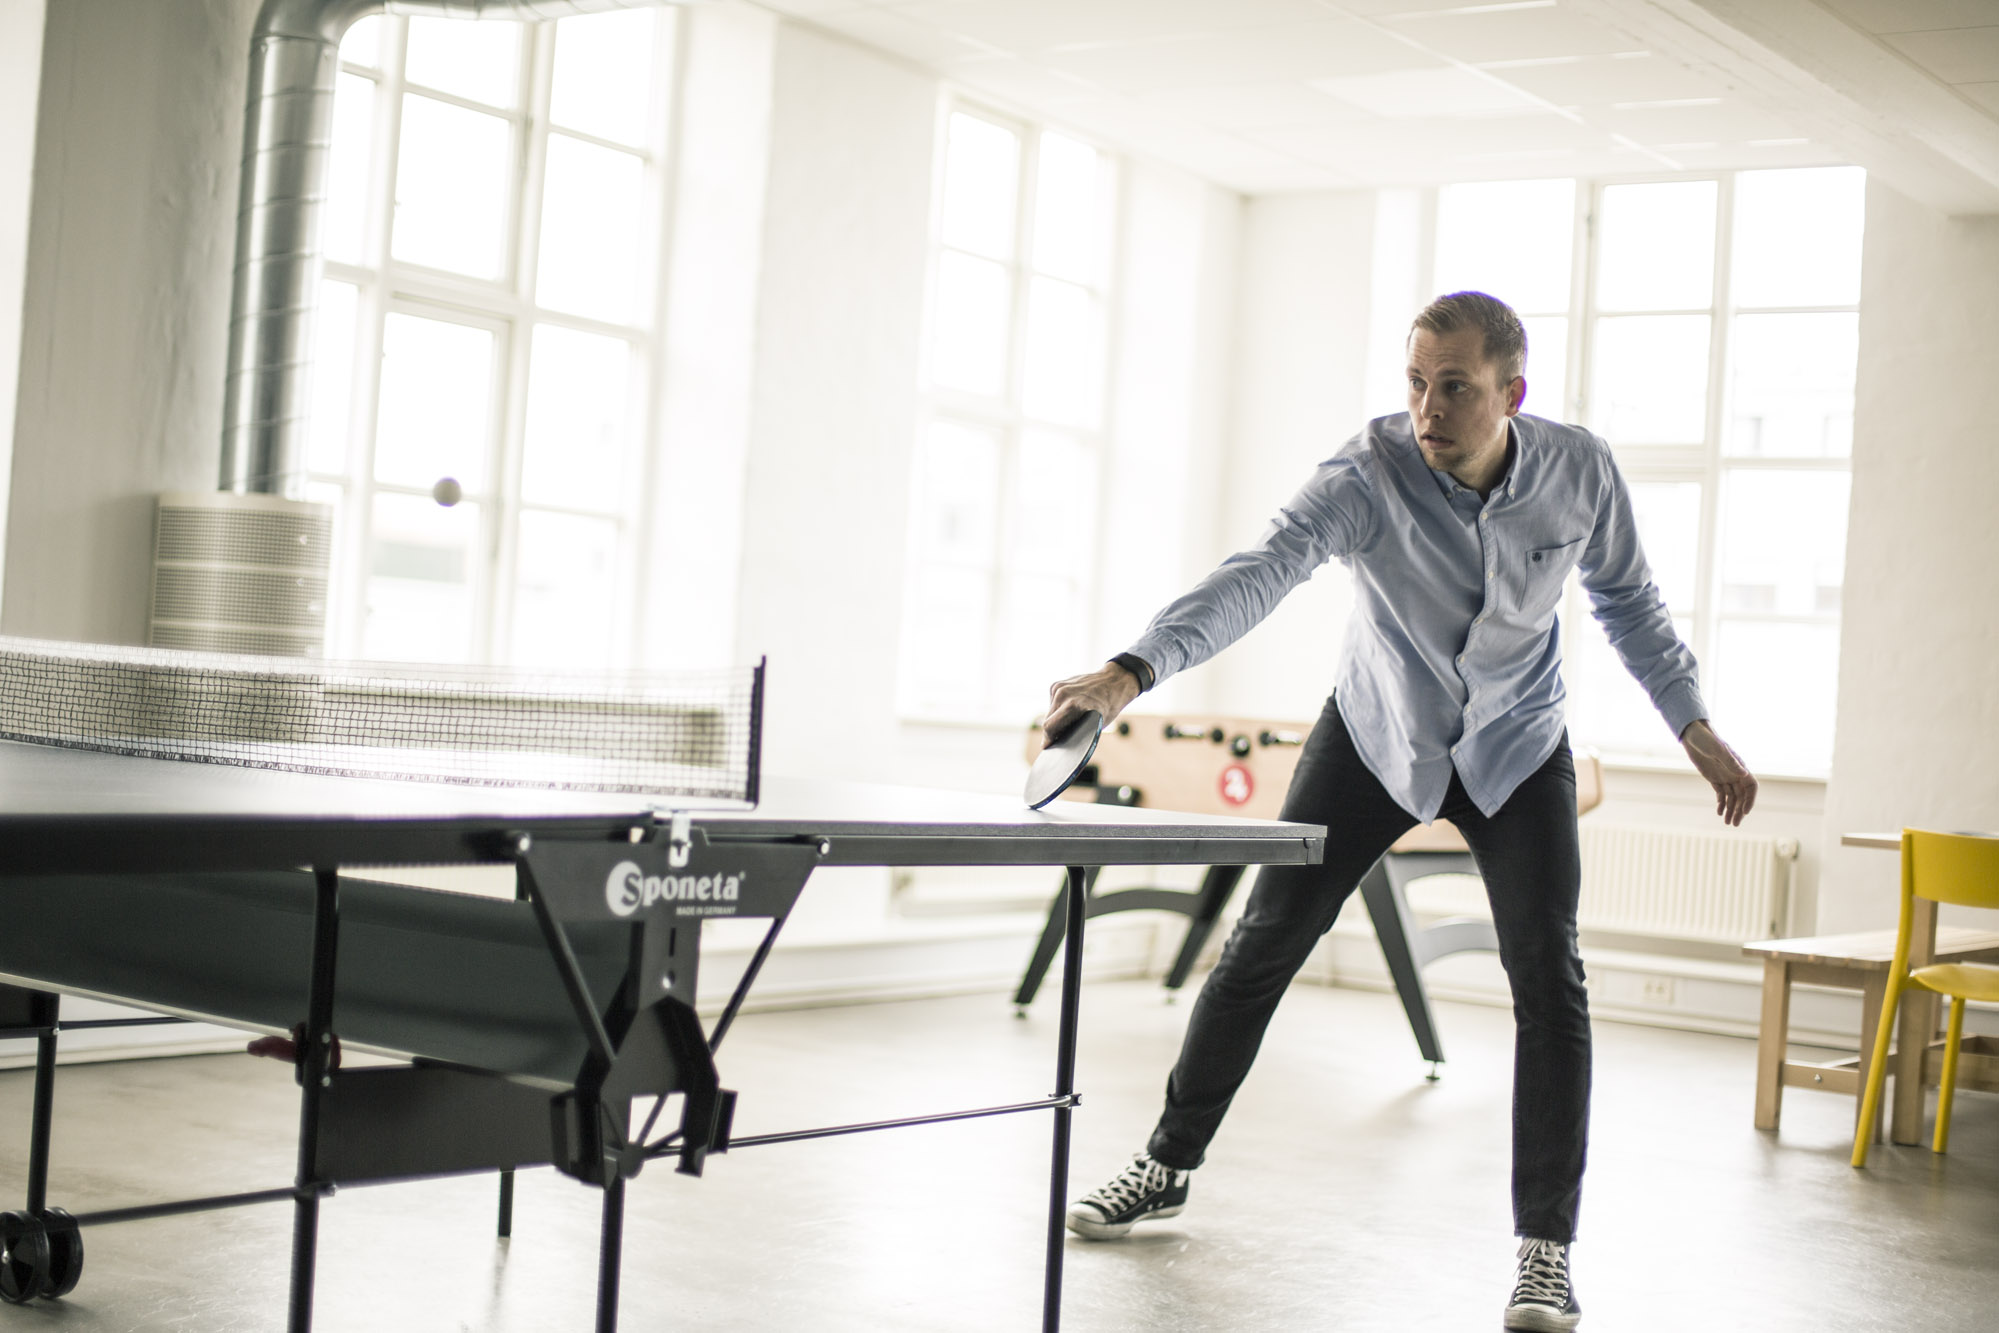 Founder of EasyPractice playing table tennis